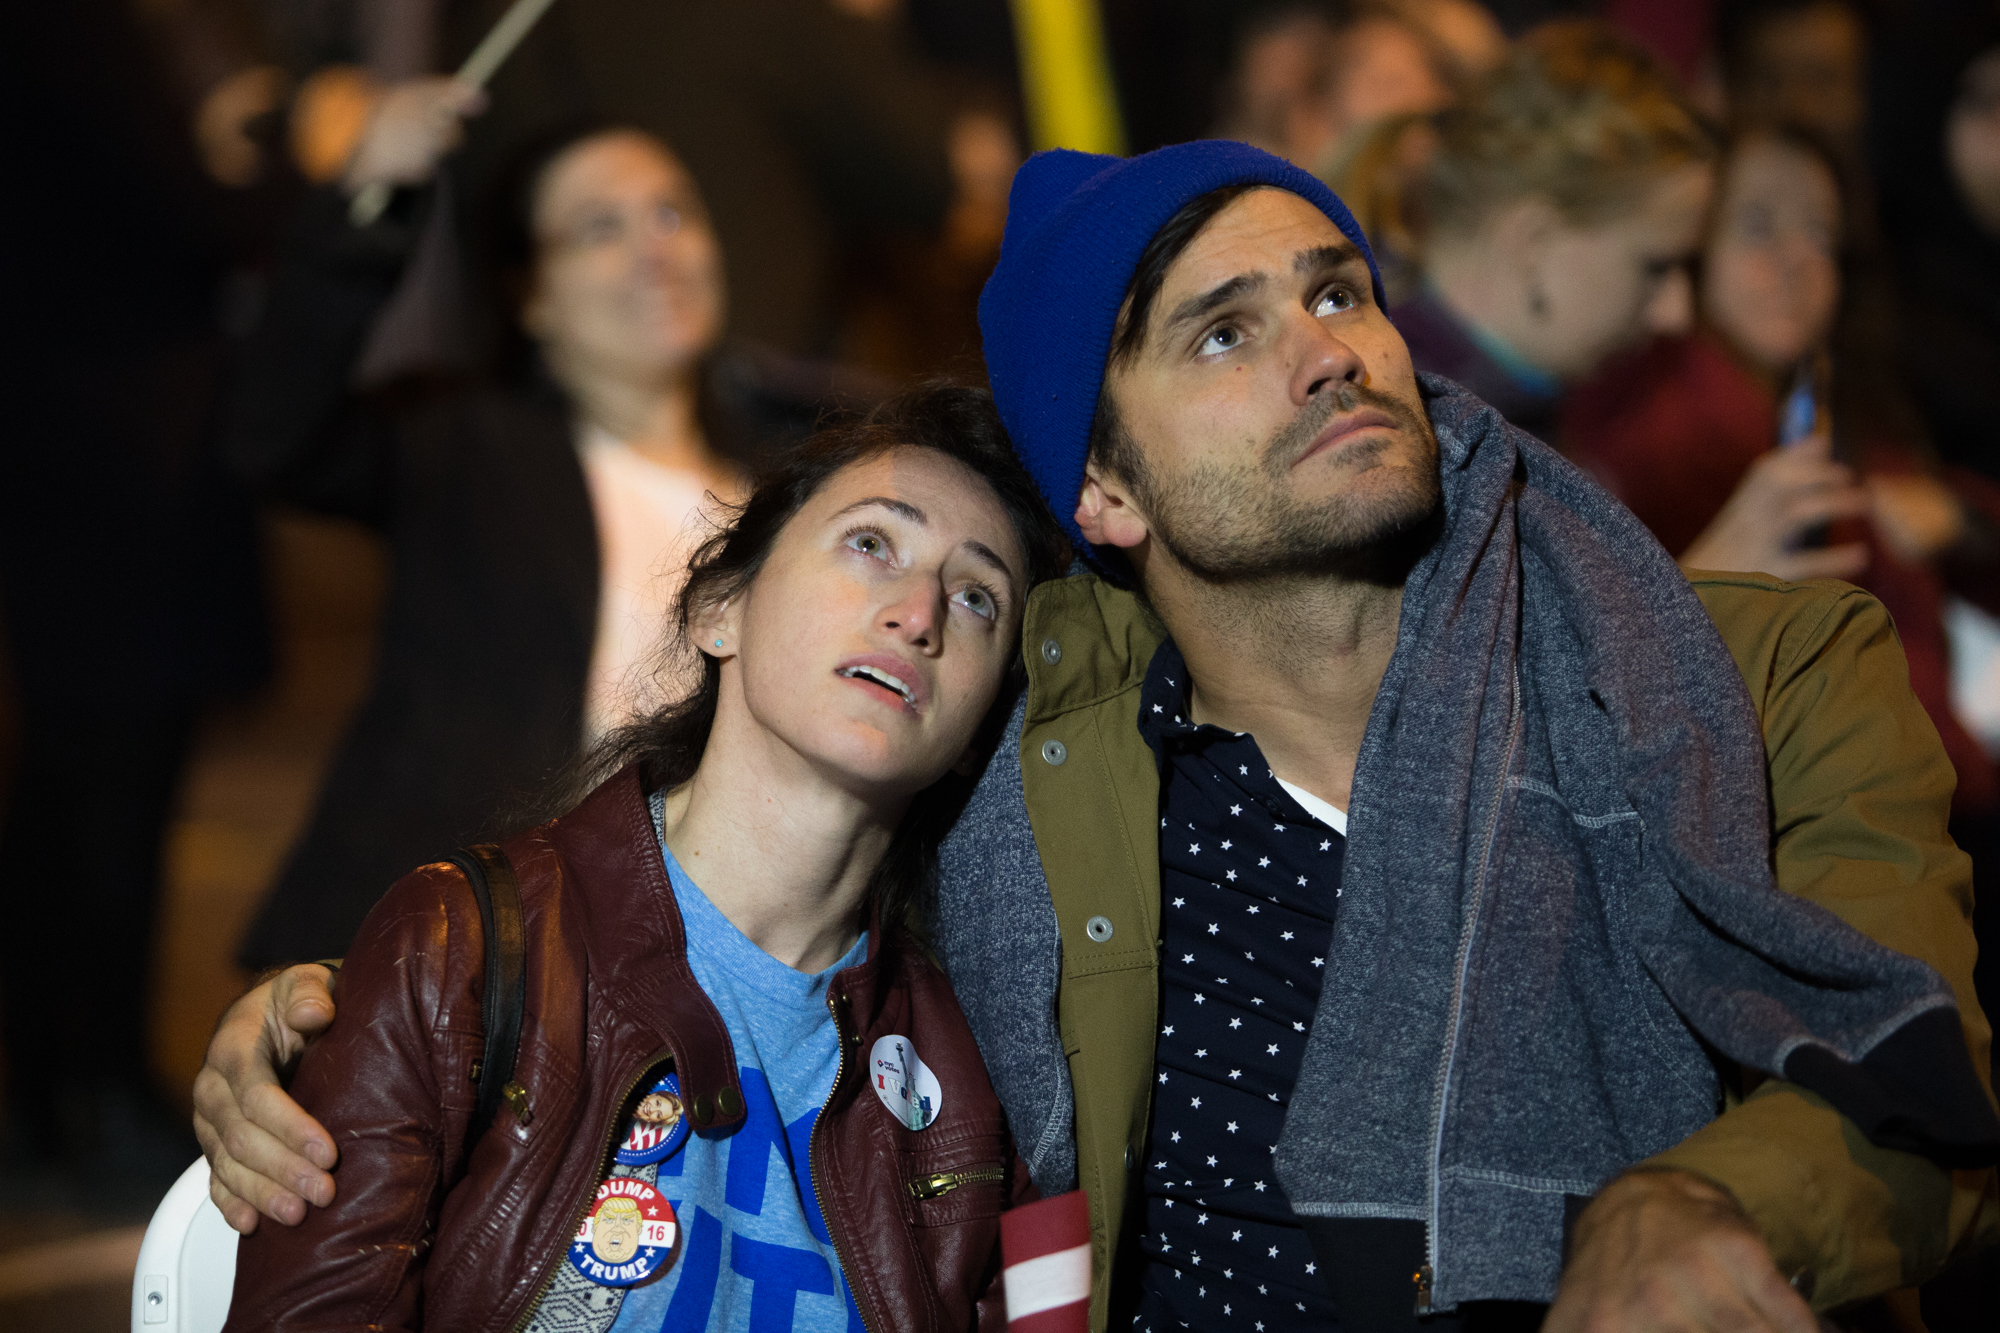 Danielle Russo (left) and Luke Ohlson, both of New York, comfort each other while watching commentary on the big screen television outside of the Jacob K. Javits Convention Center in the early hours of Nov. 9, 2016.